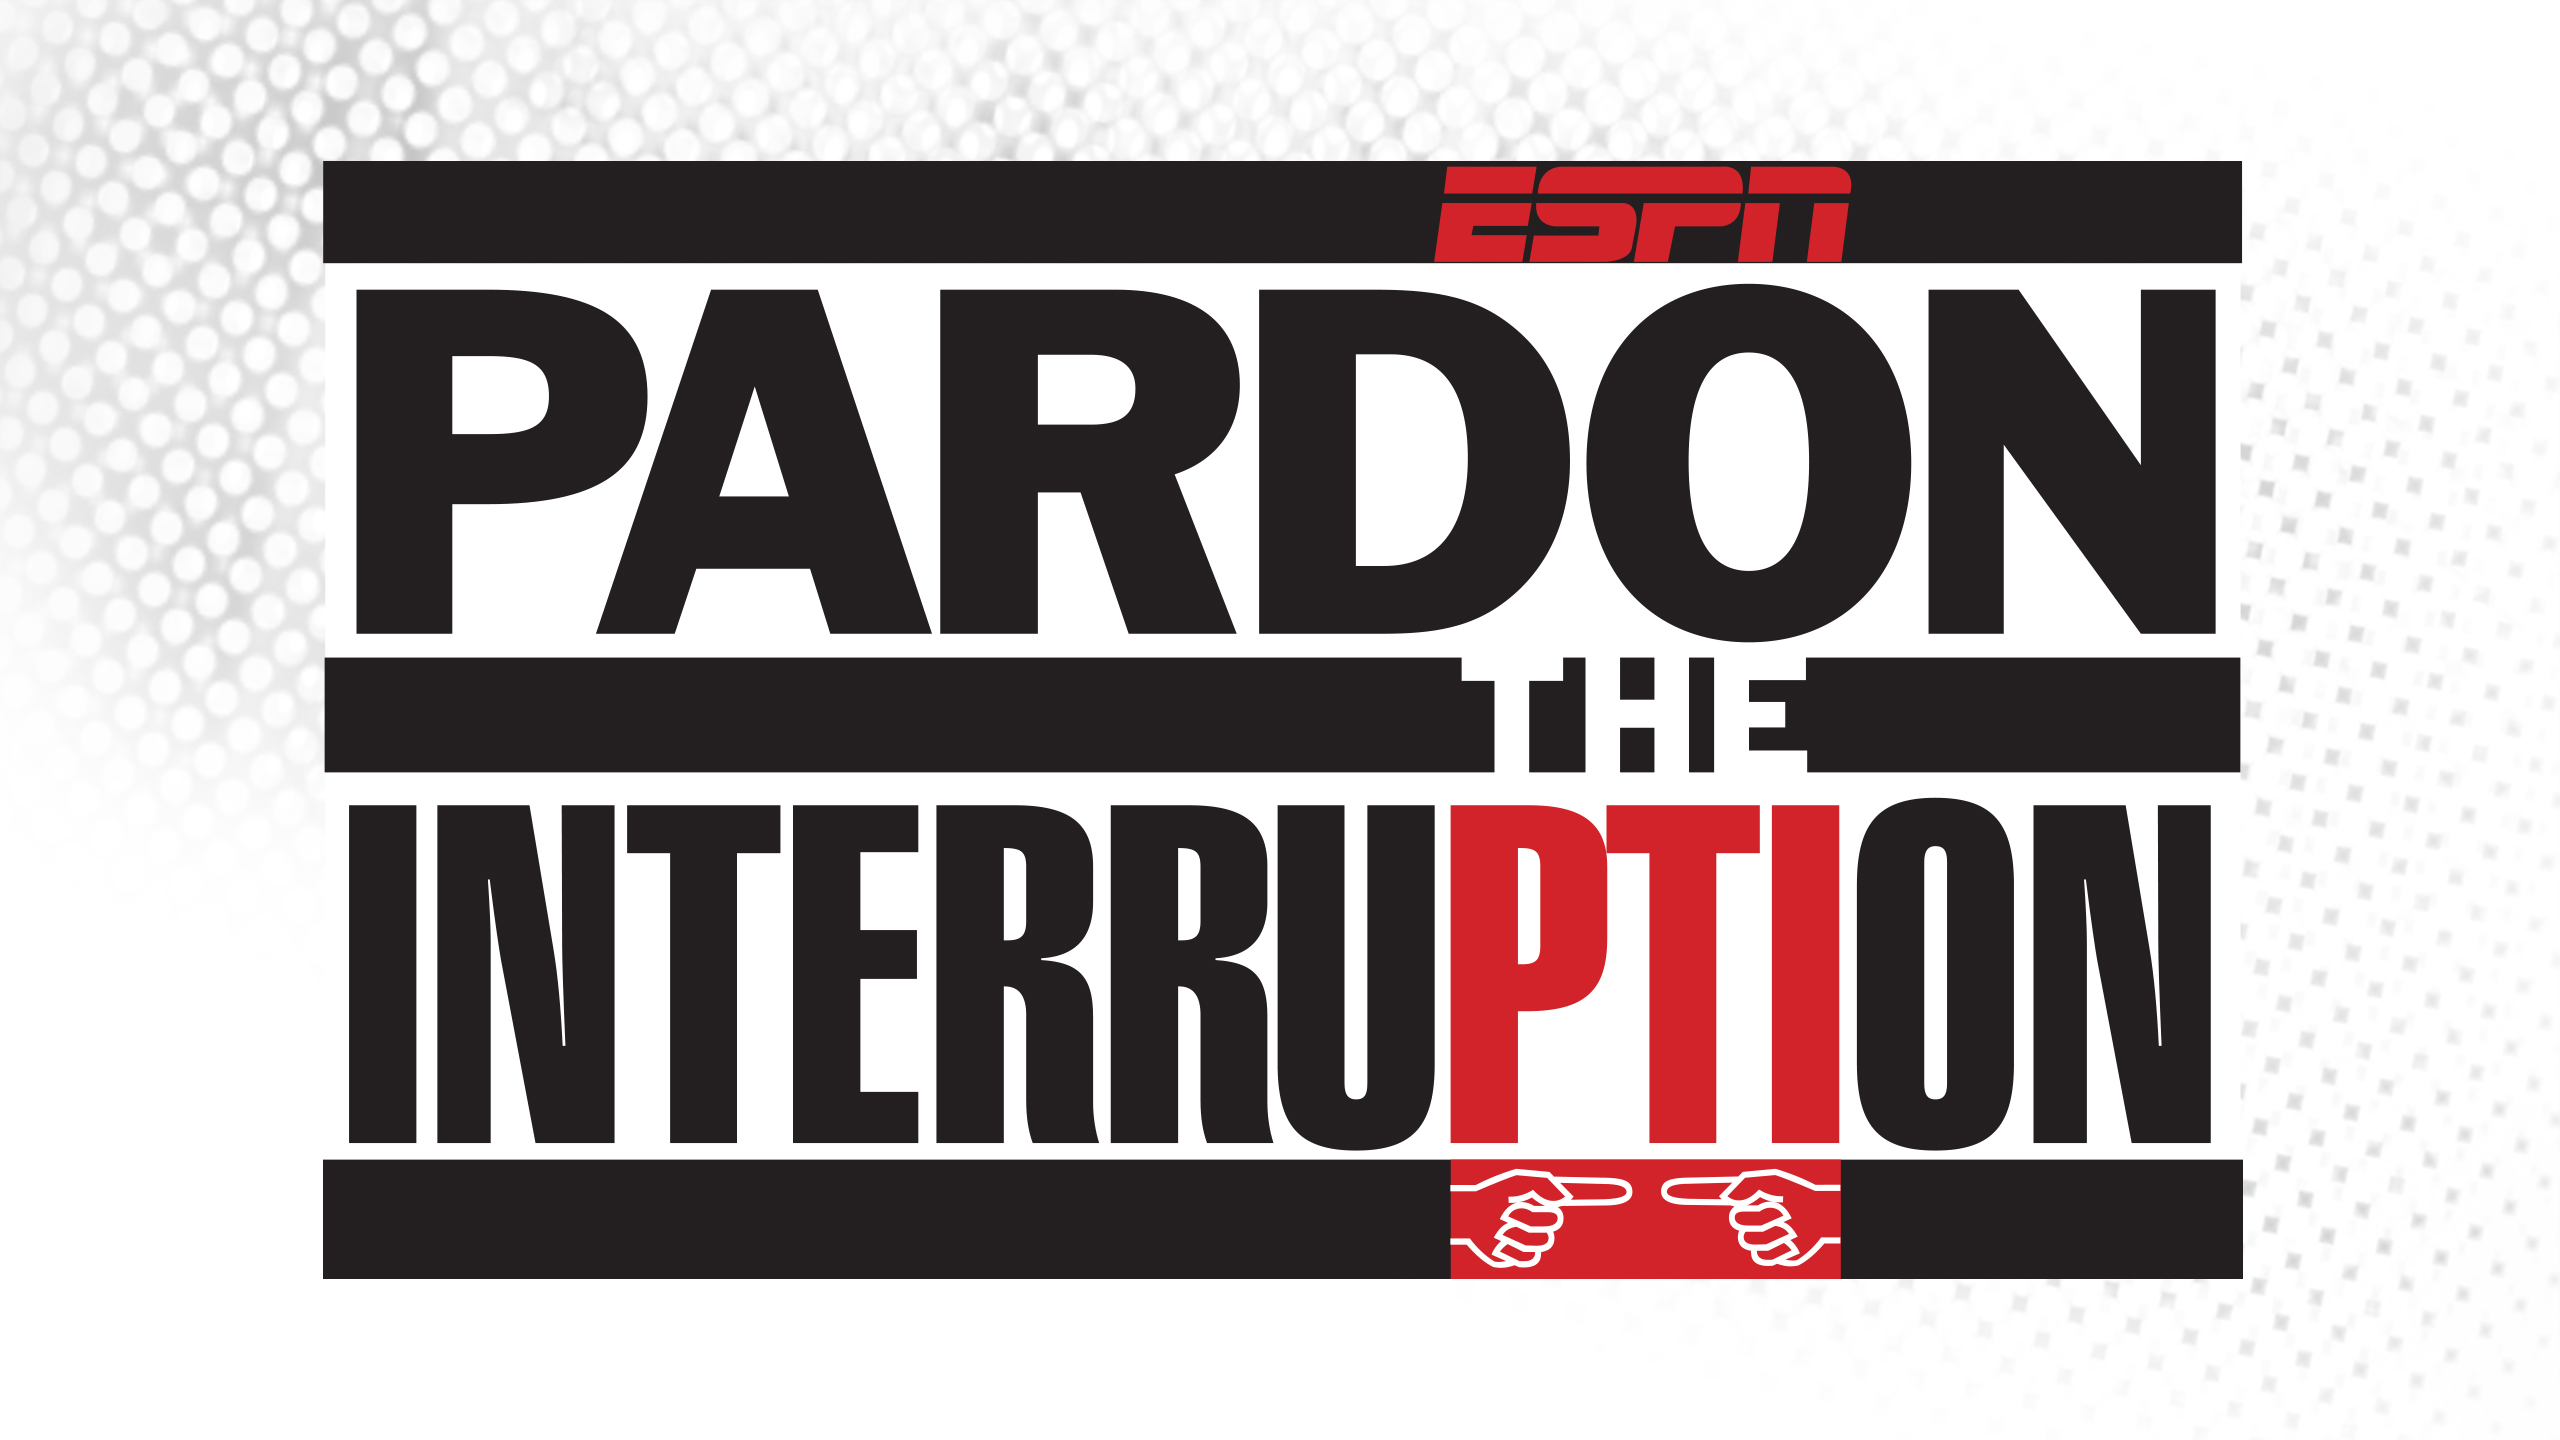 Mon, 10/22 - Pardon The Interruption